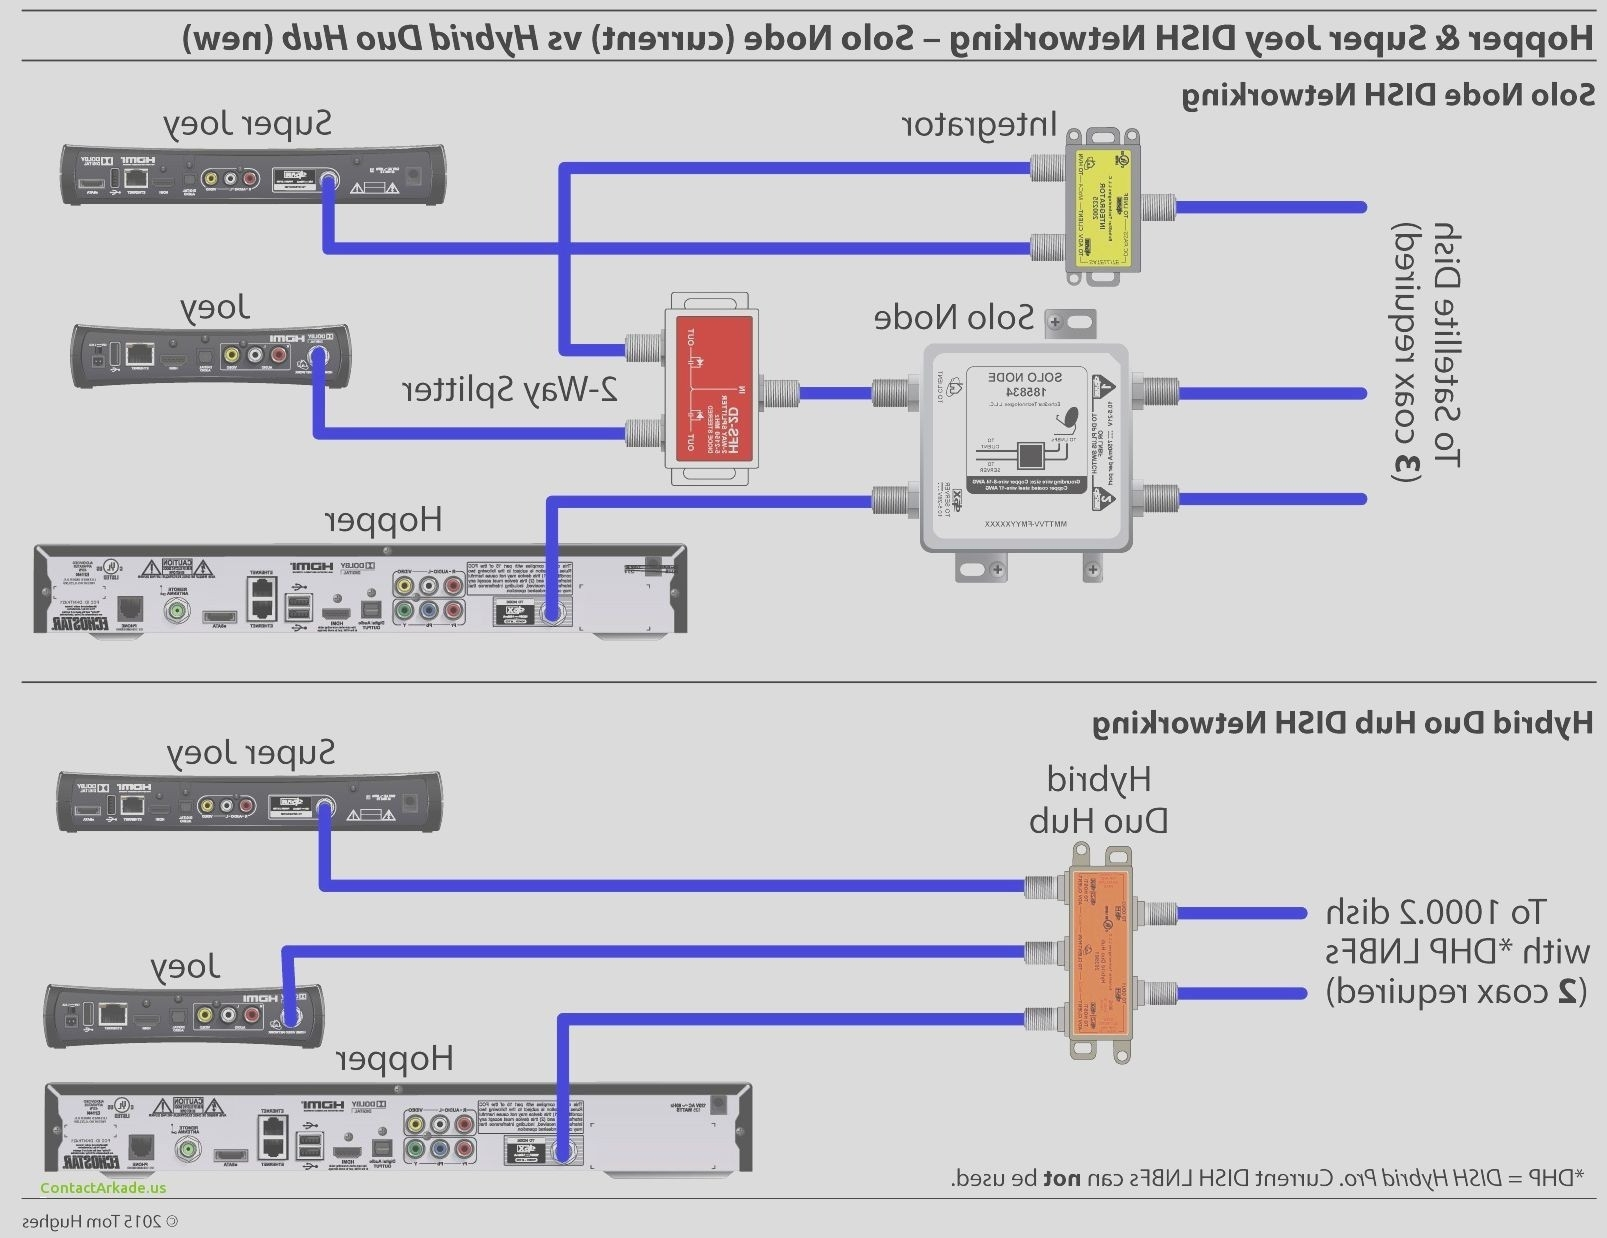 hight resolution of ethernet cable wiring diagram cat5e wiring diagram for a cat5 cable new cat5e wire diagram